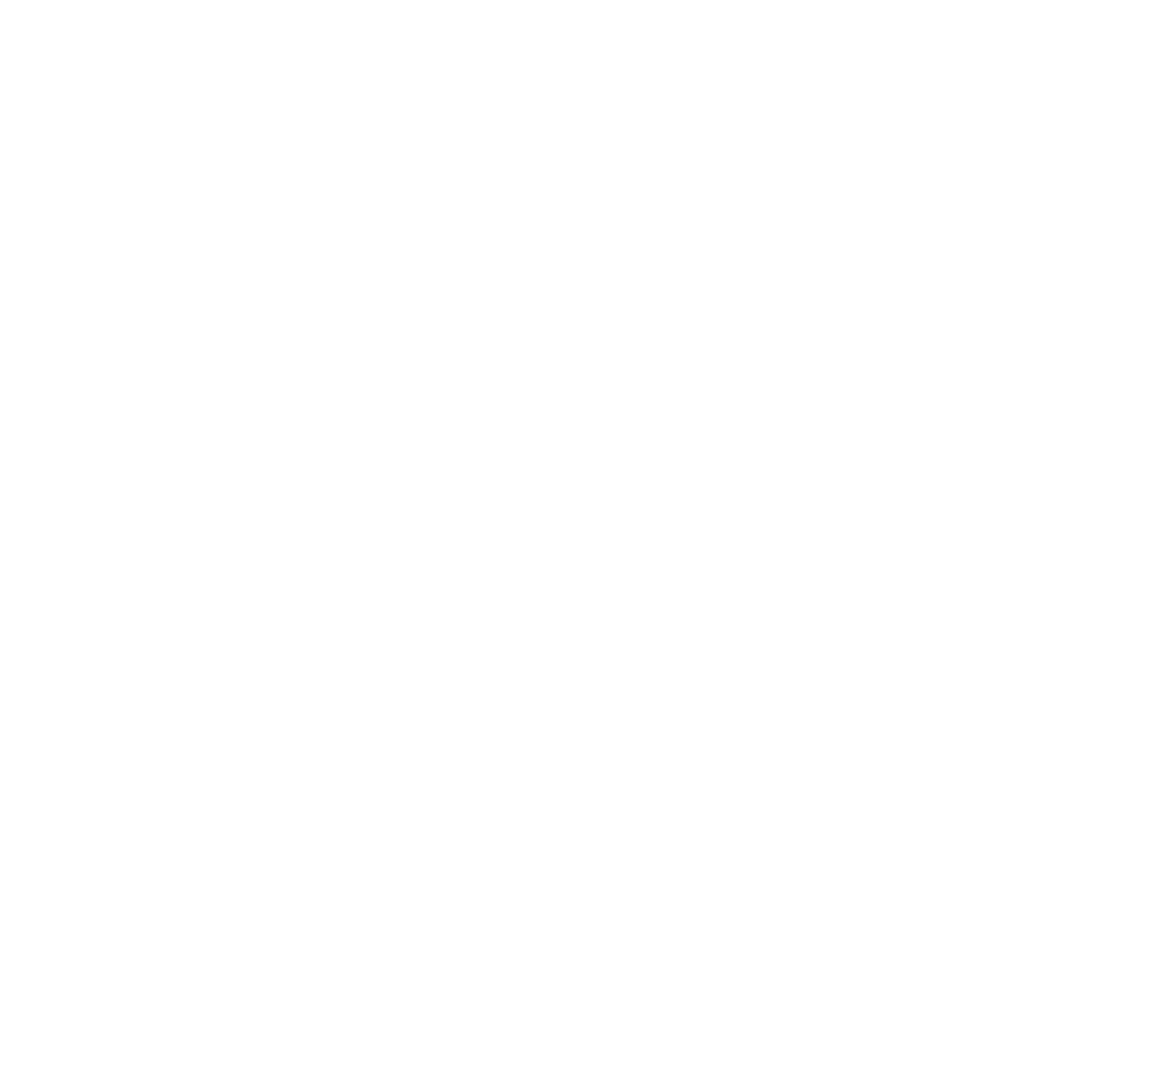 Stress Test Osfi: Mortgage And Real Estate MarketWatch: Regulatory Mortgage